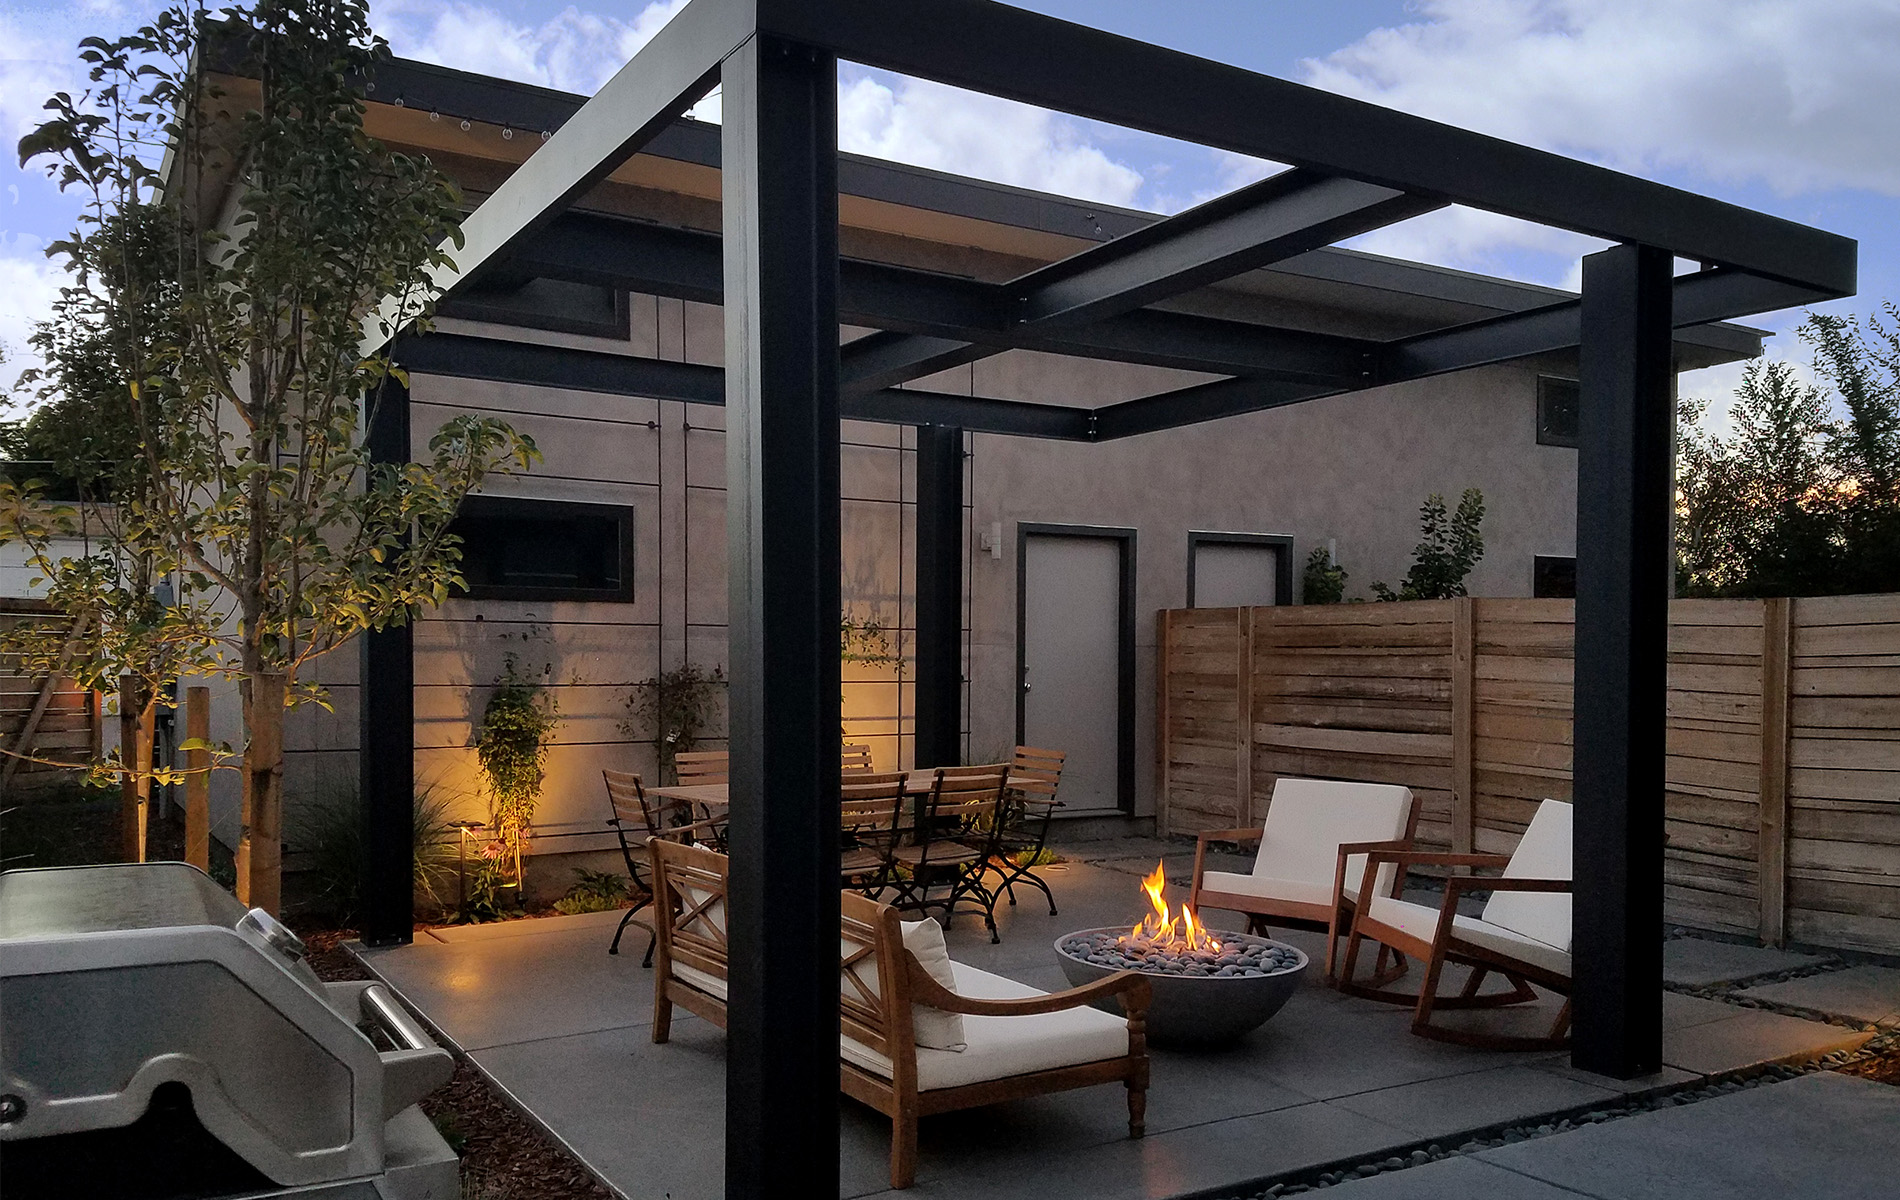 Ultra Modern Backyard Outdoor Living Area - Highlands ... on Outdoor Living And Landscapes id=27798